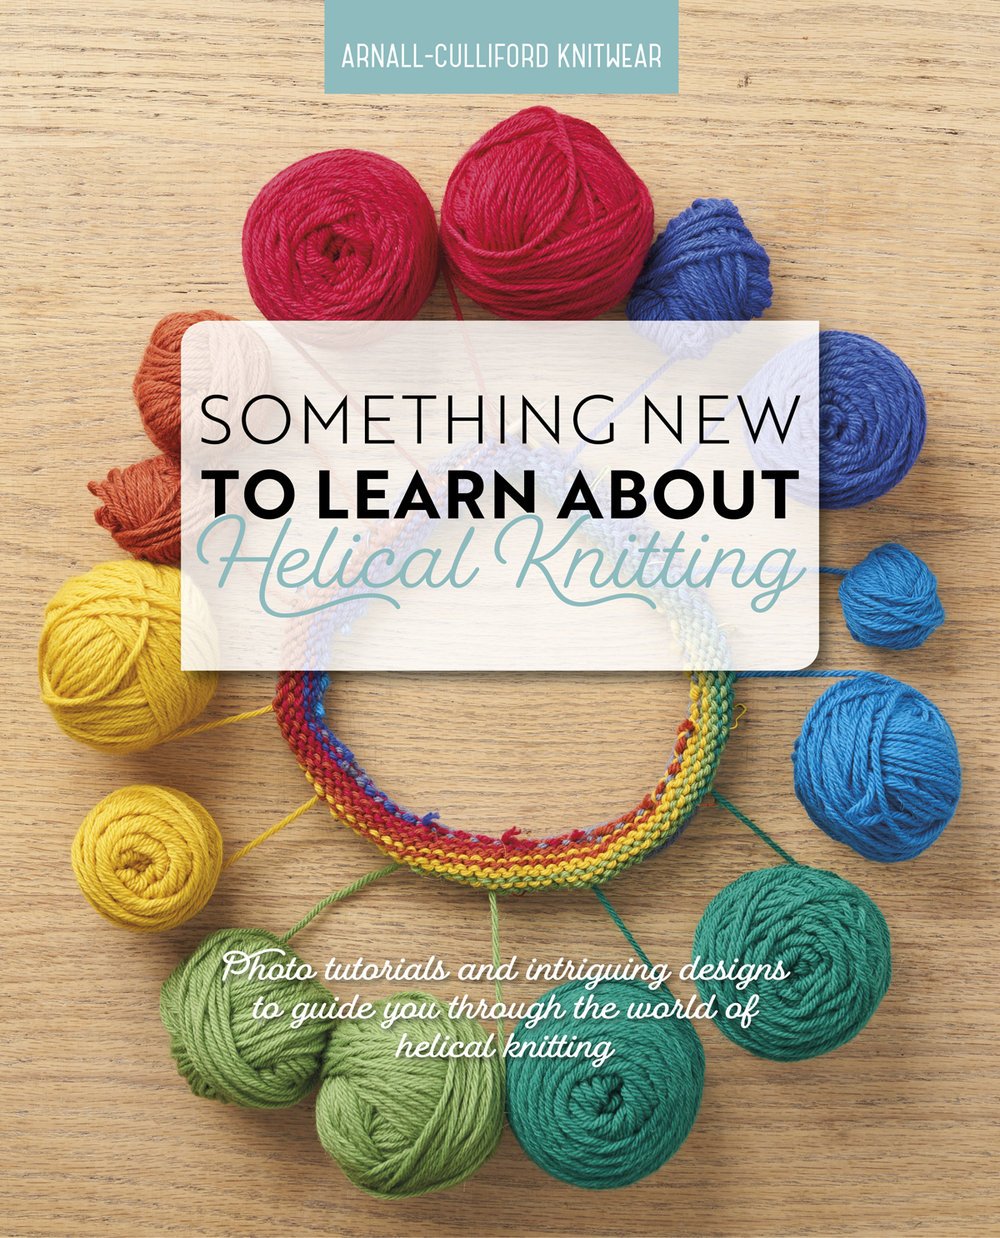 Something New to Learn About Helical Knitting